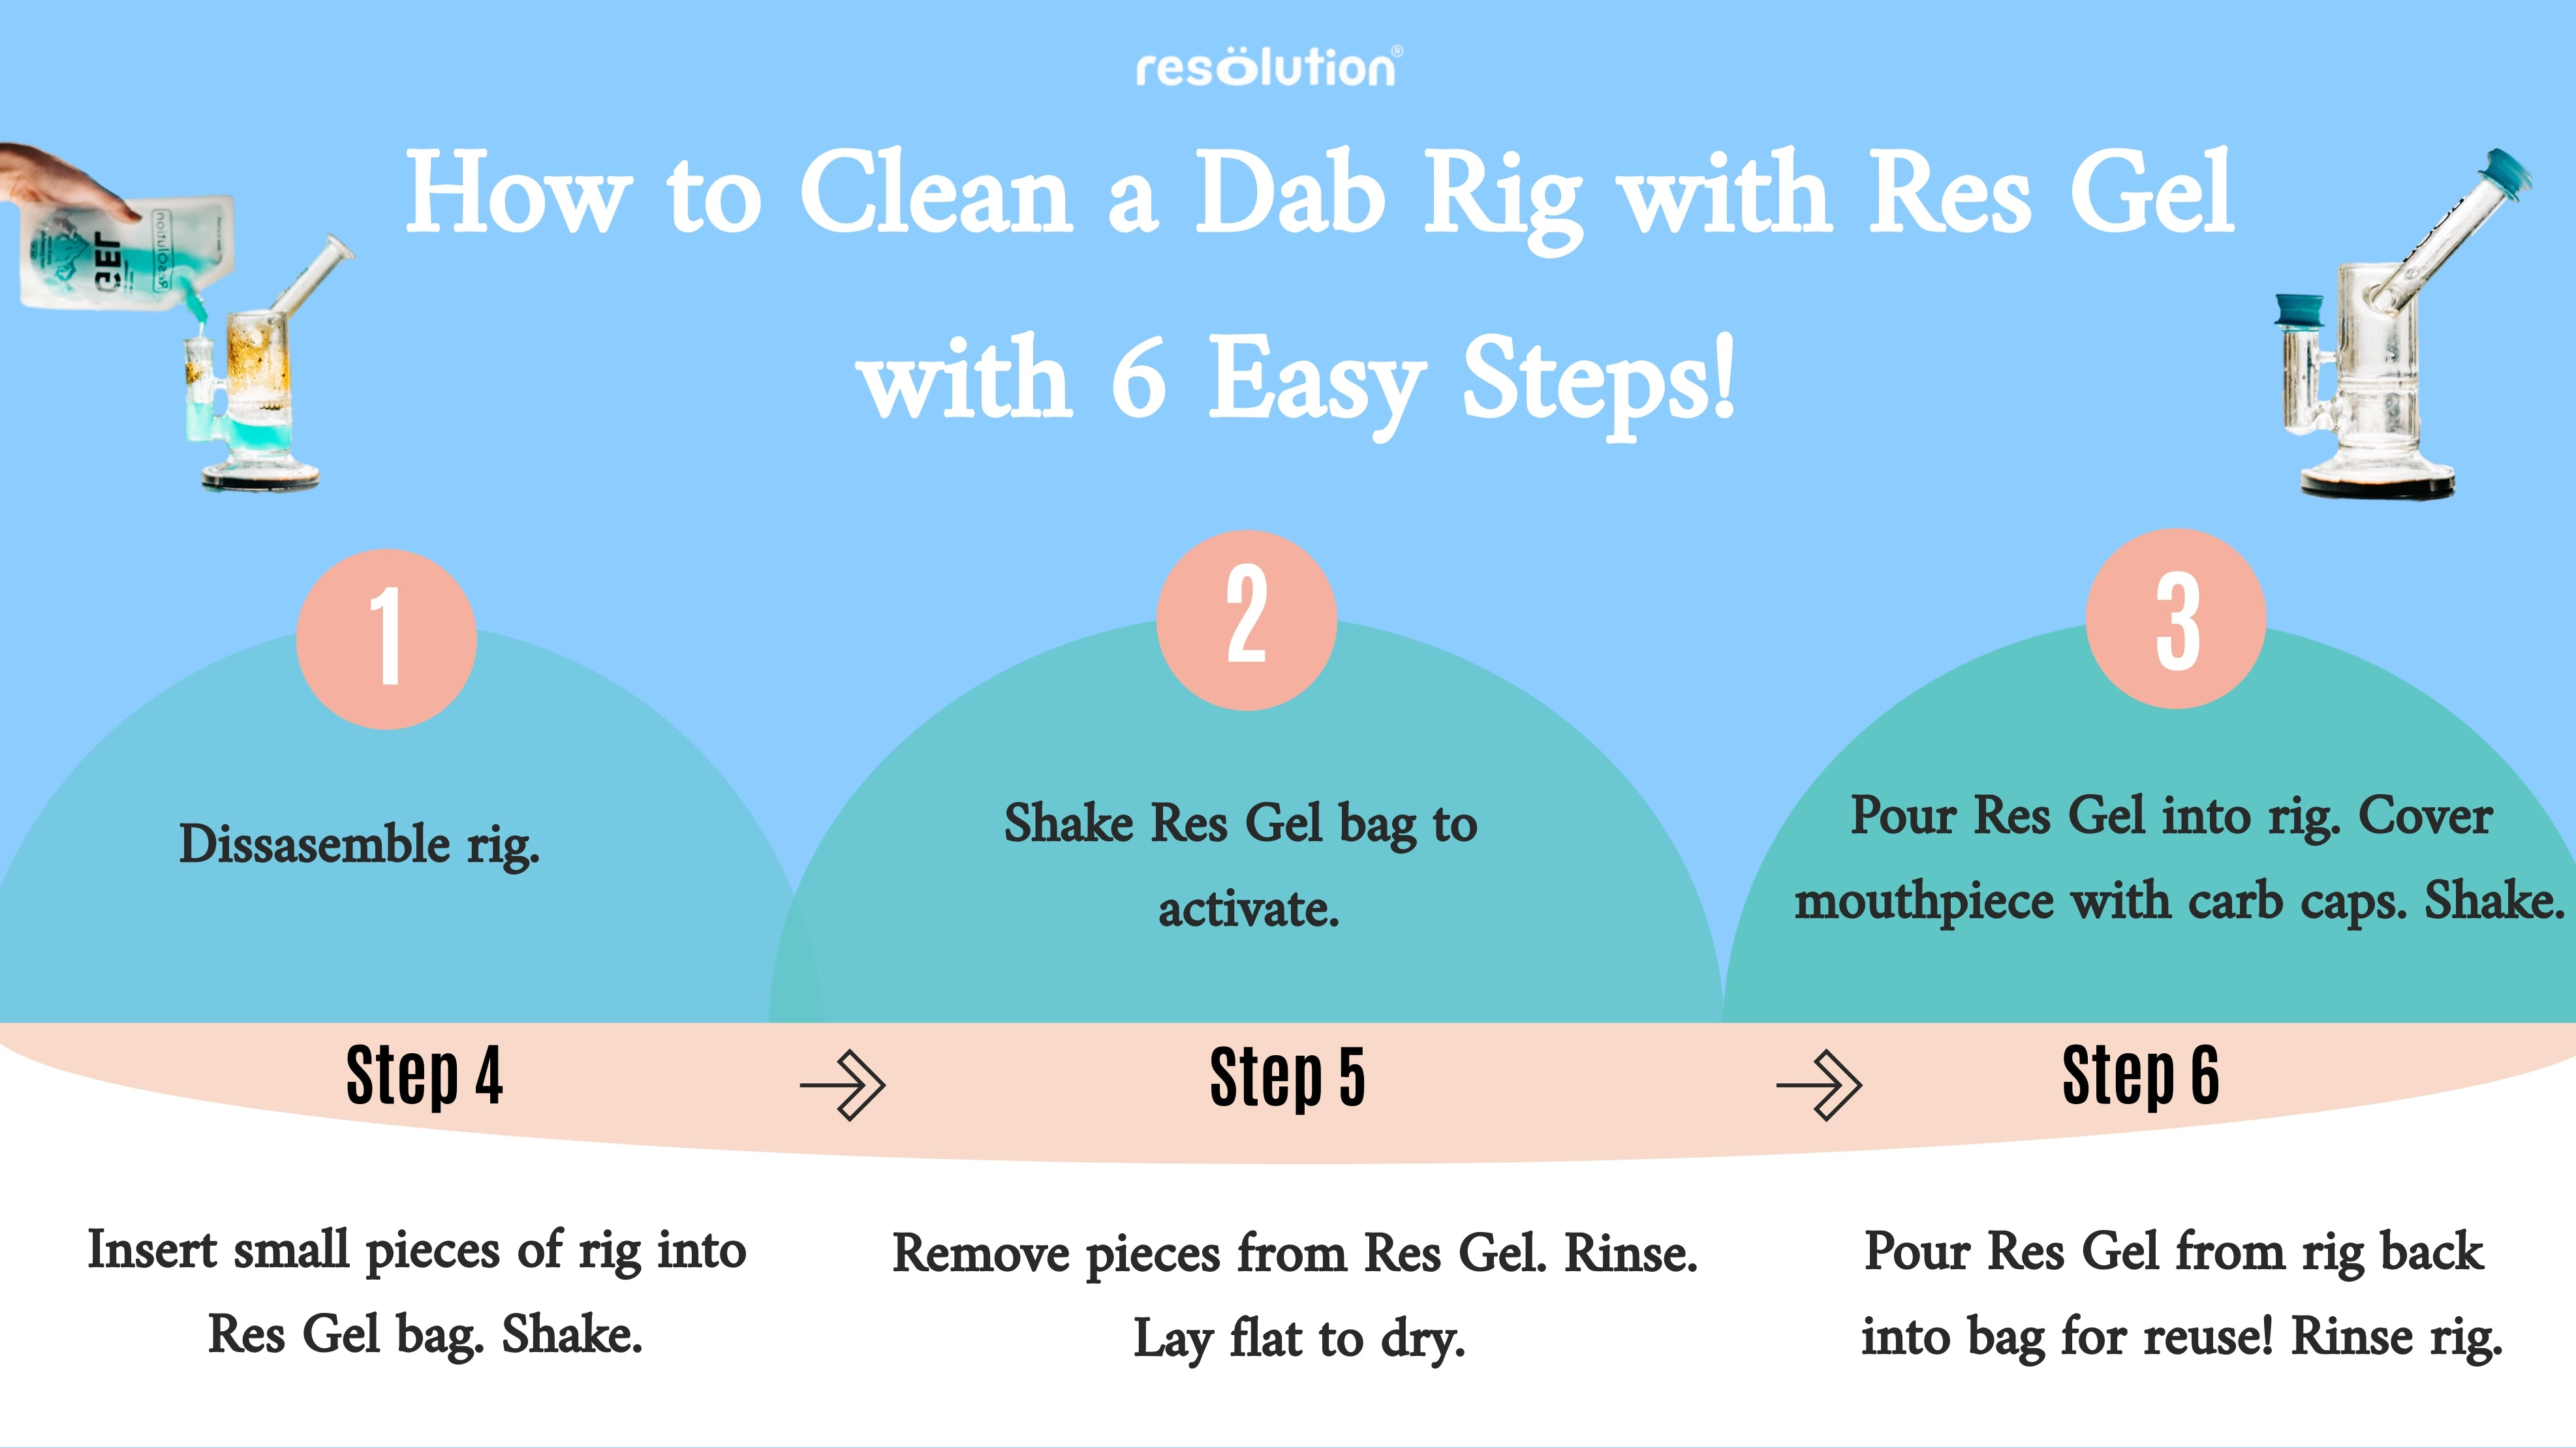 how to clean a dab rig with res gel